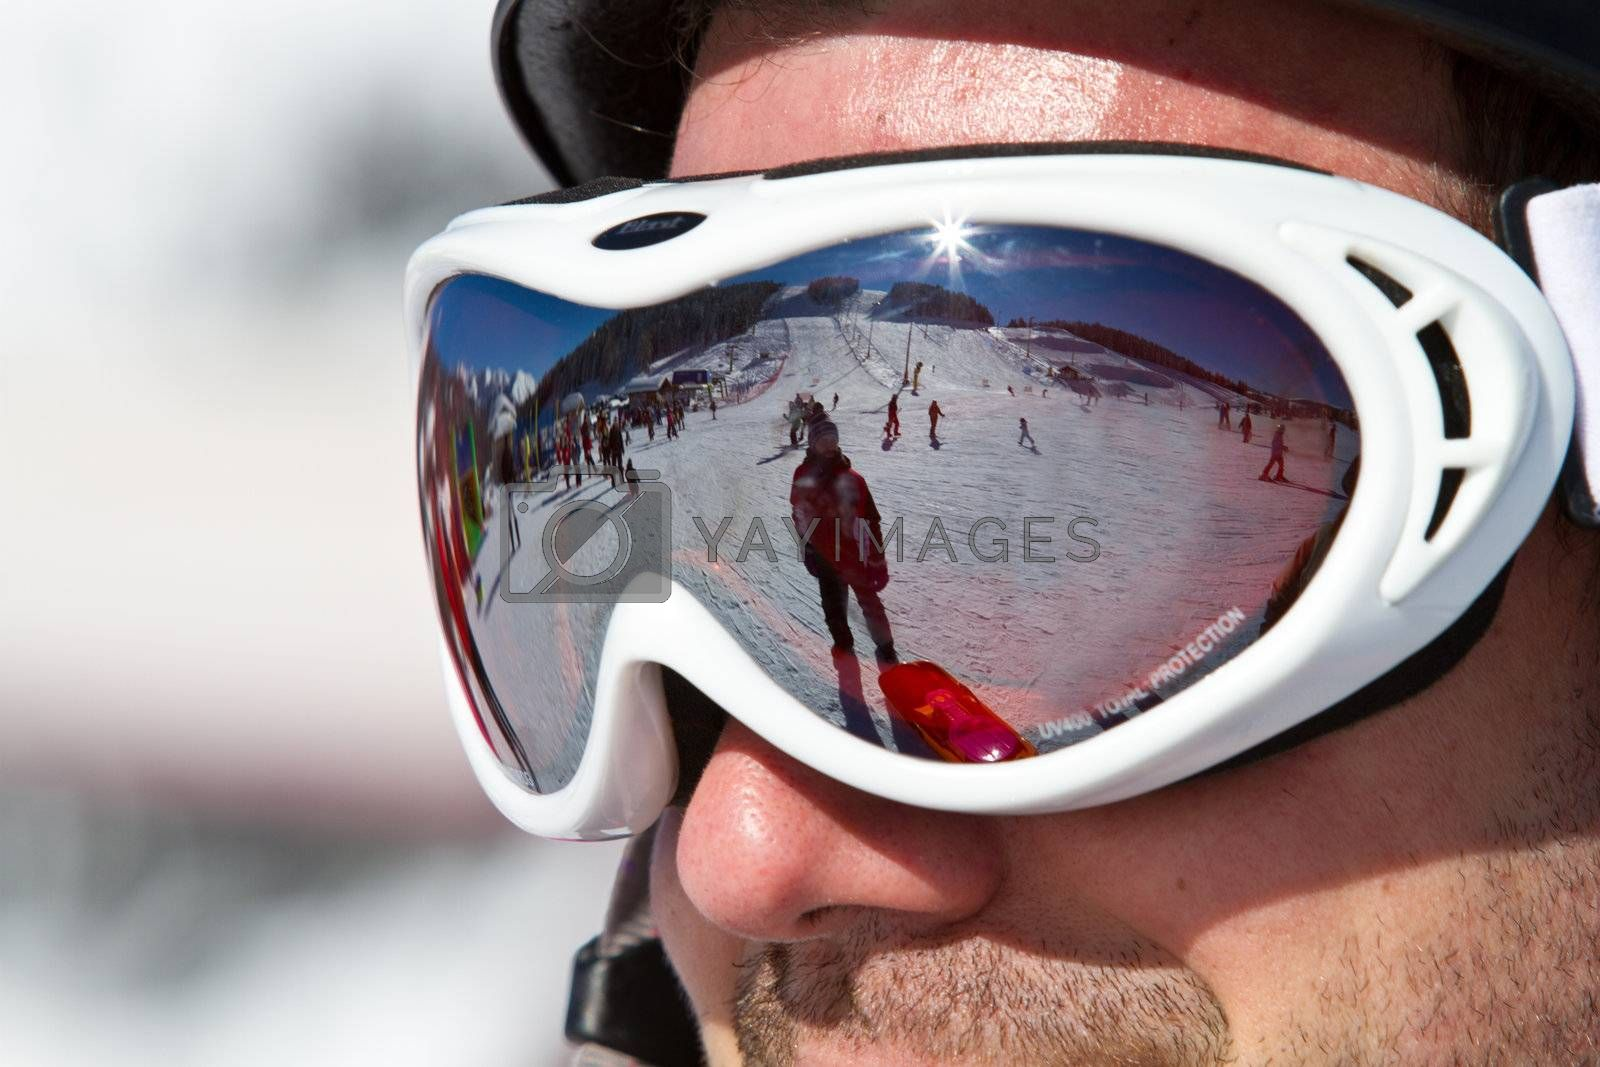 The man in the mountain-skiing form in a helmet and glasses